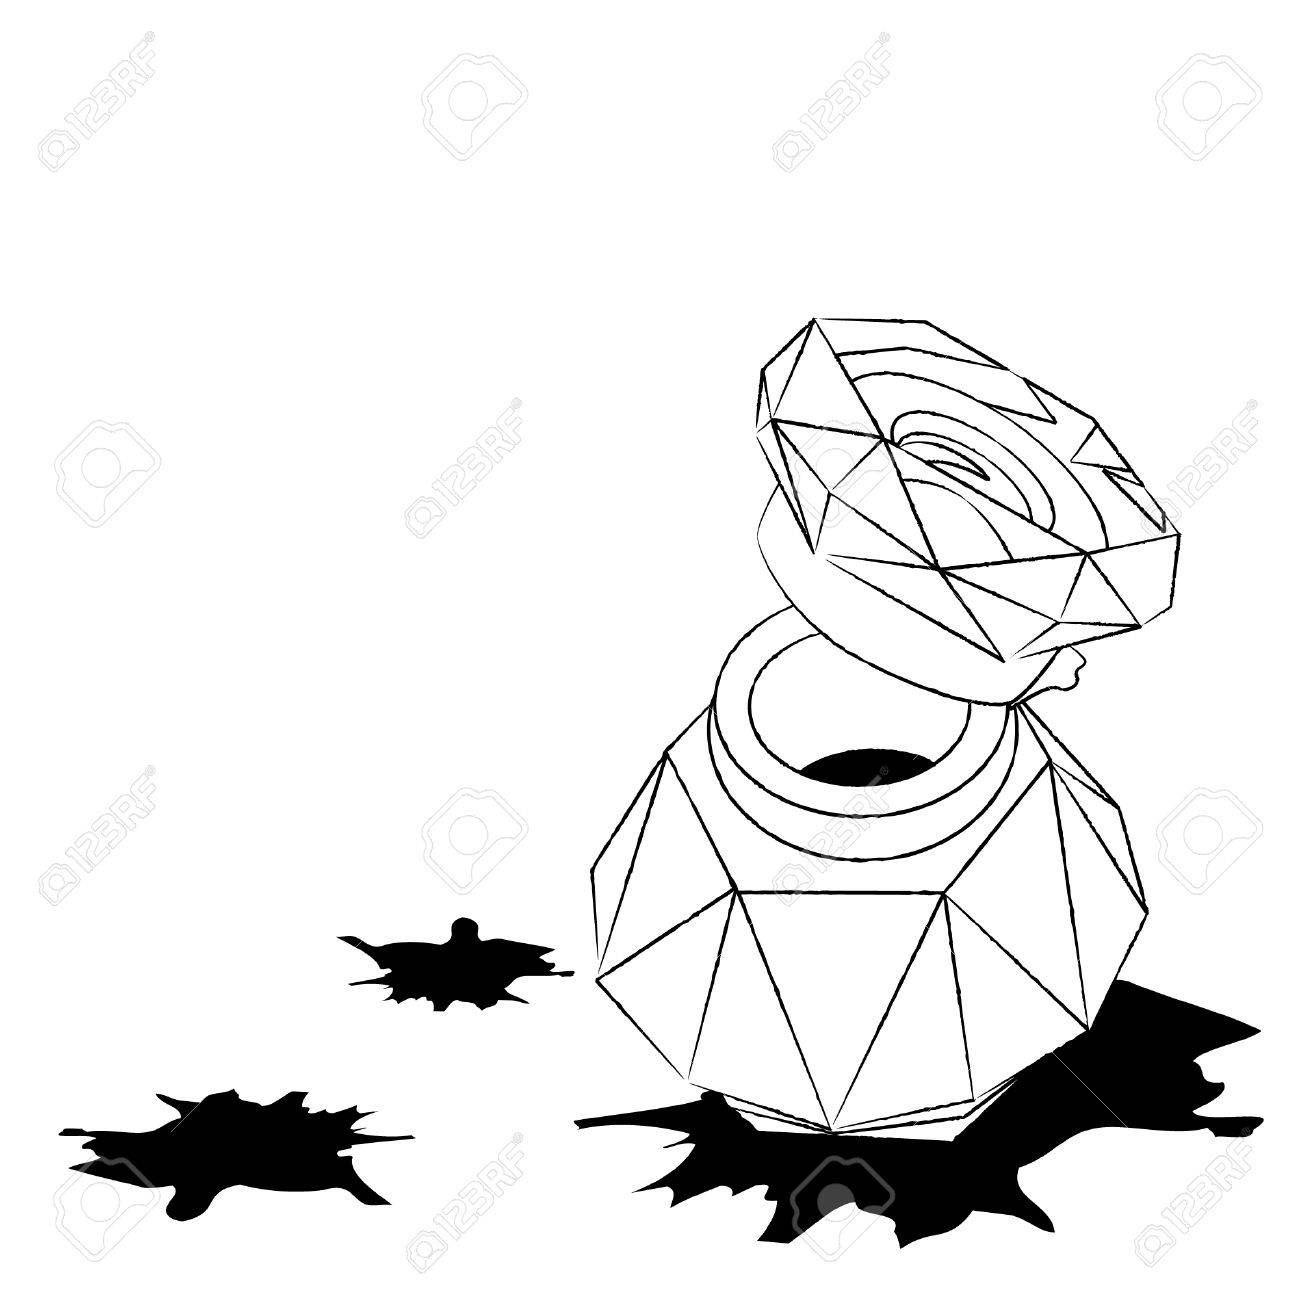 1300x1300 Old Glass Inkwell And Ink Blots In Sketch Style Royalty Free